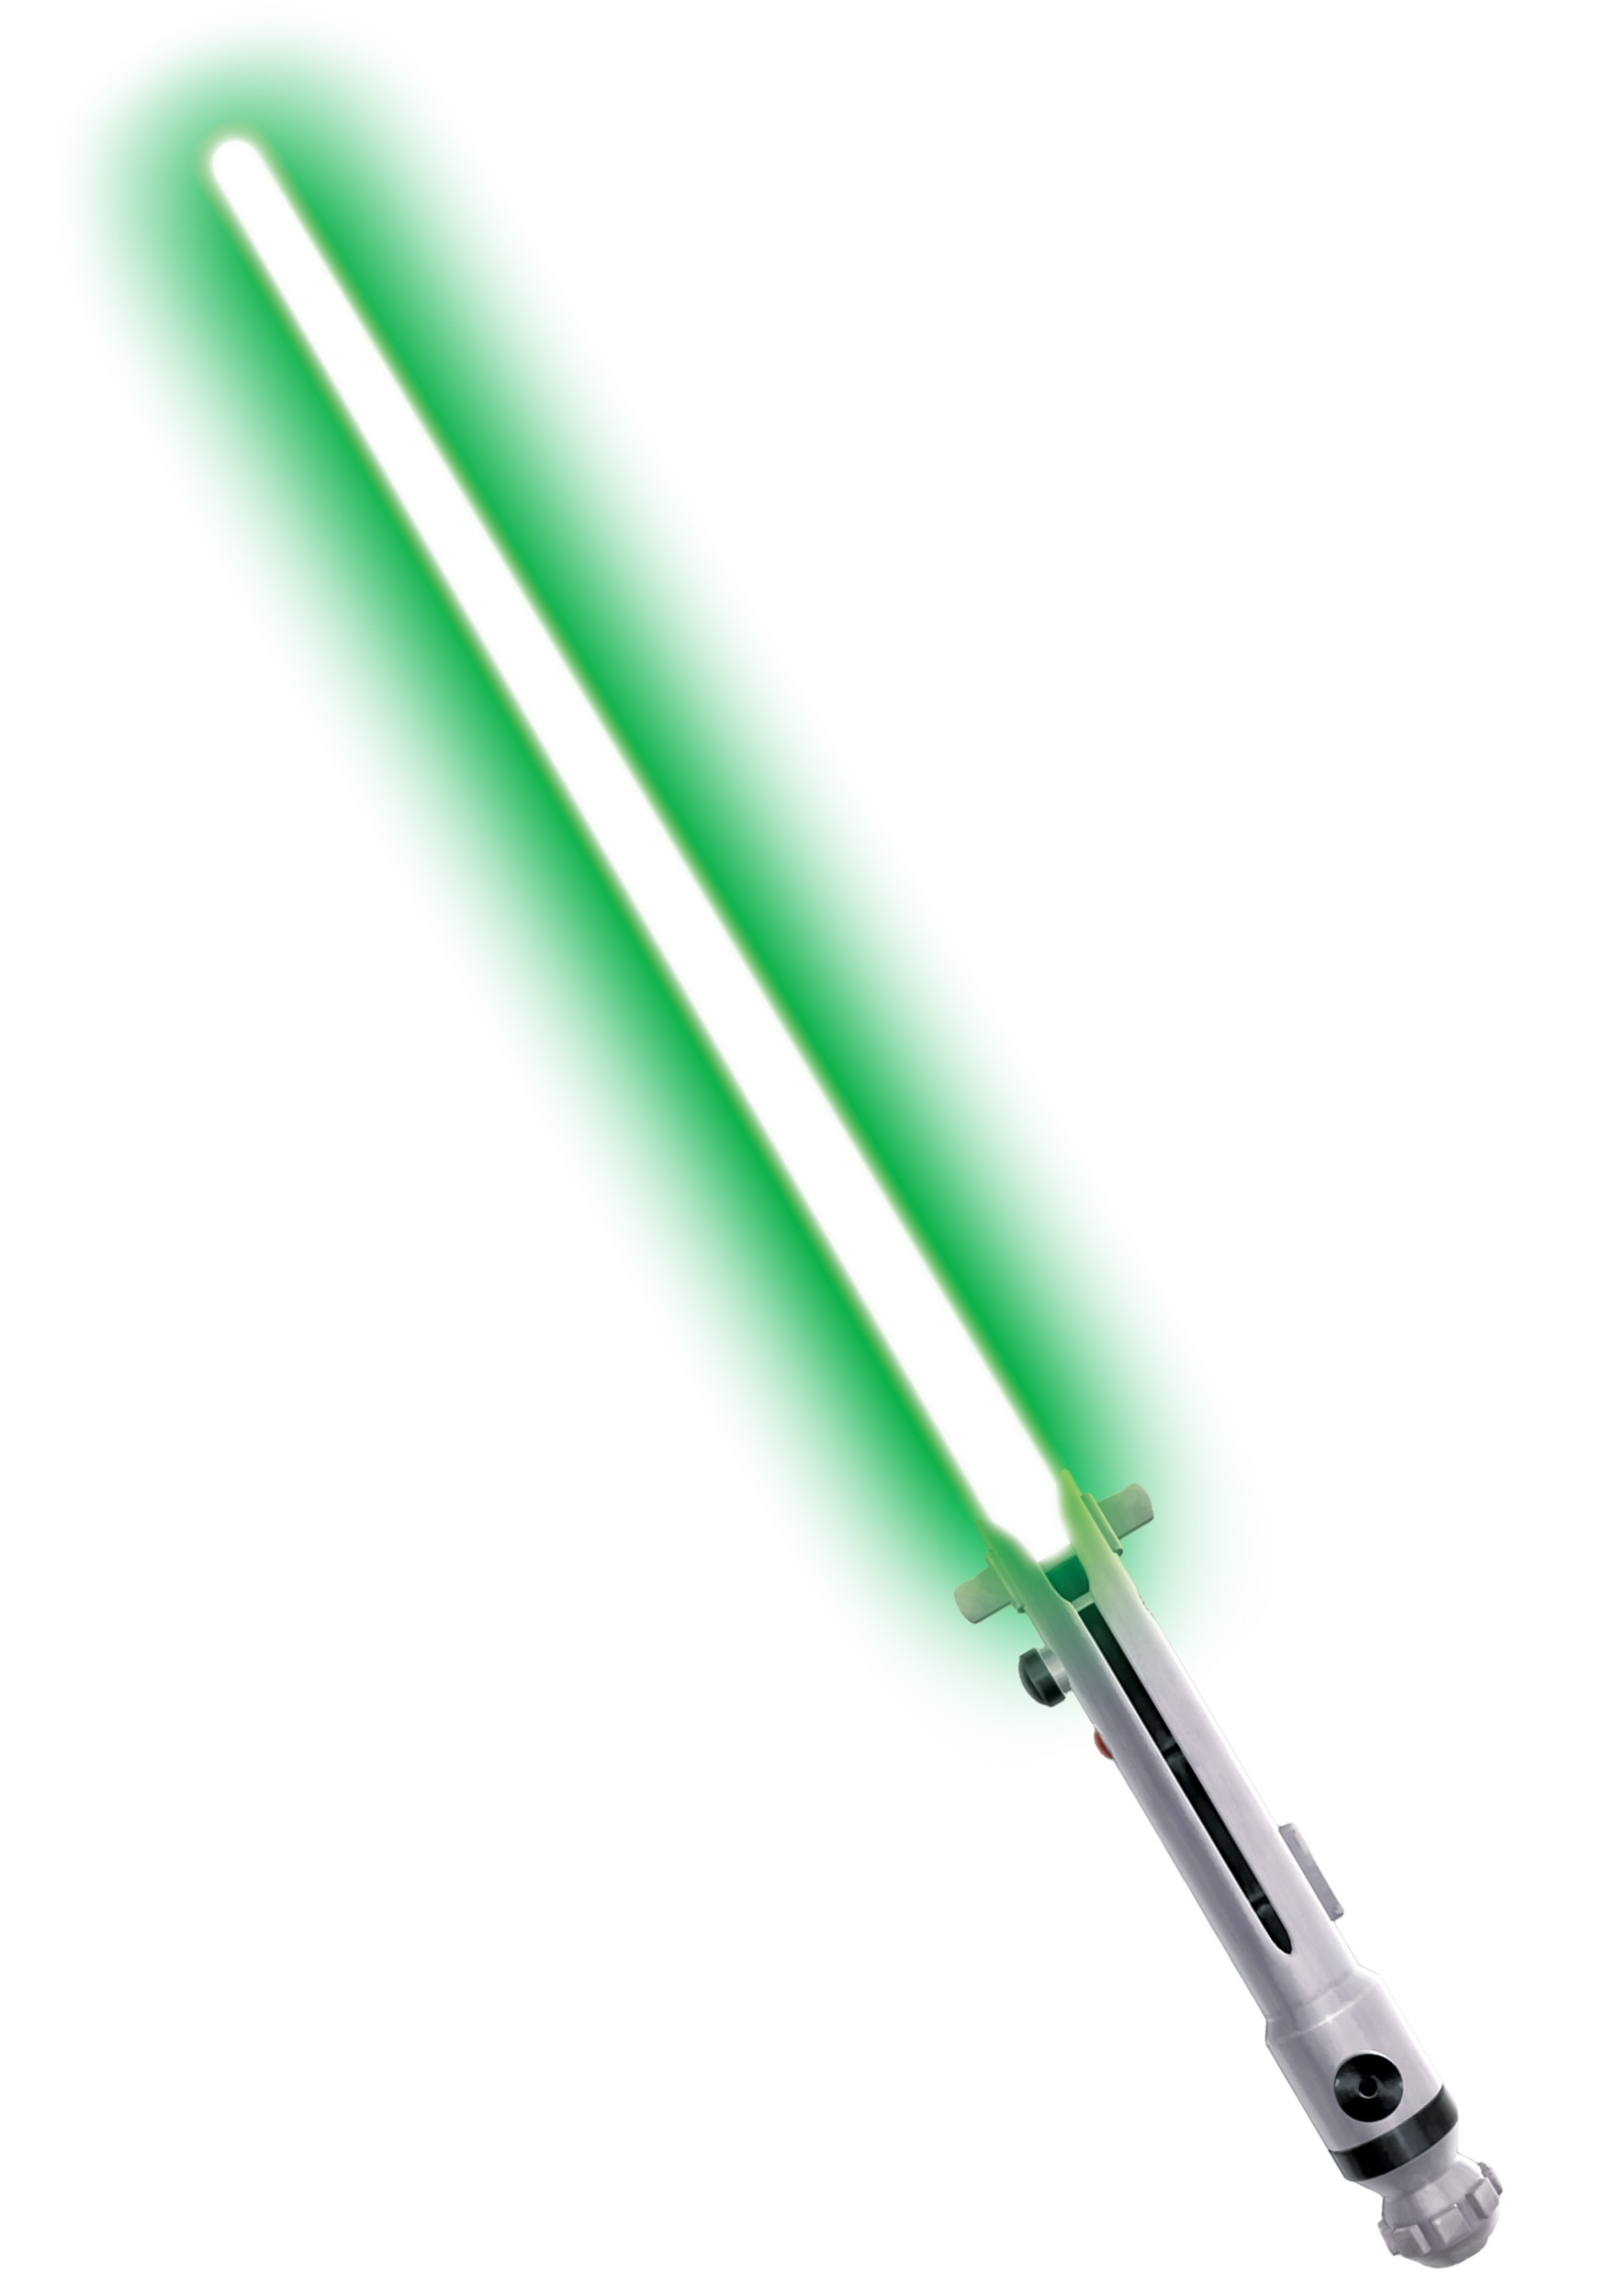 Ahsoka Lightsaber Green Star Wars Lightsaber : ahsoka lightsaber from www.buystarwarscostumes.com size 1750 x 2500 jpeg 141kB